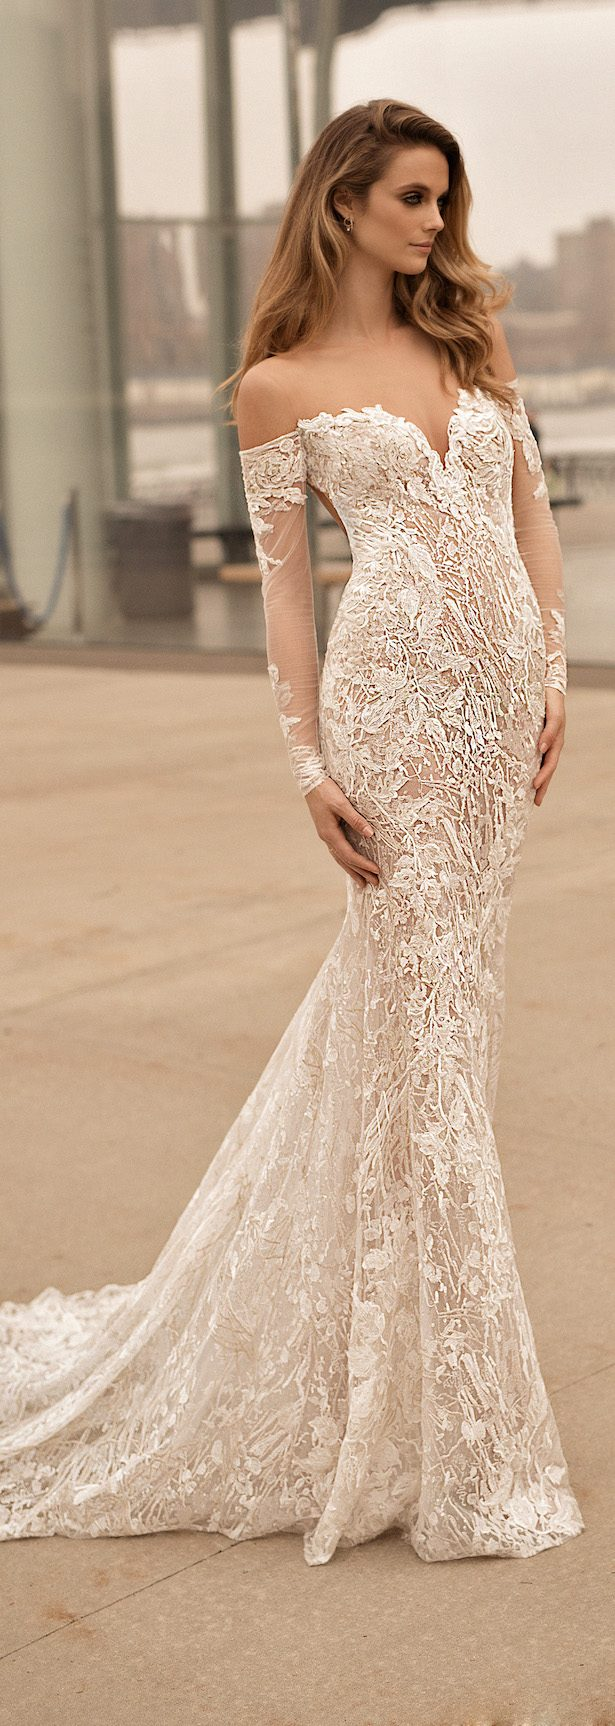 Best Wedding Dresses Of 2017 Berta Dress Collection Spring 2018